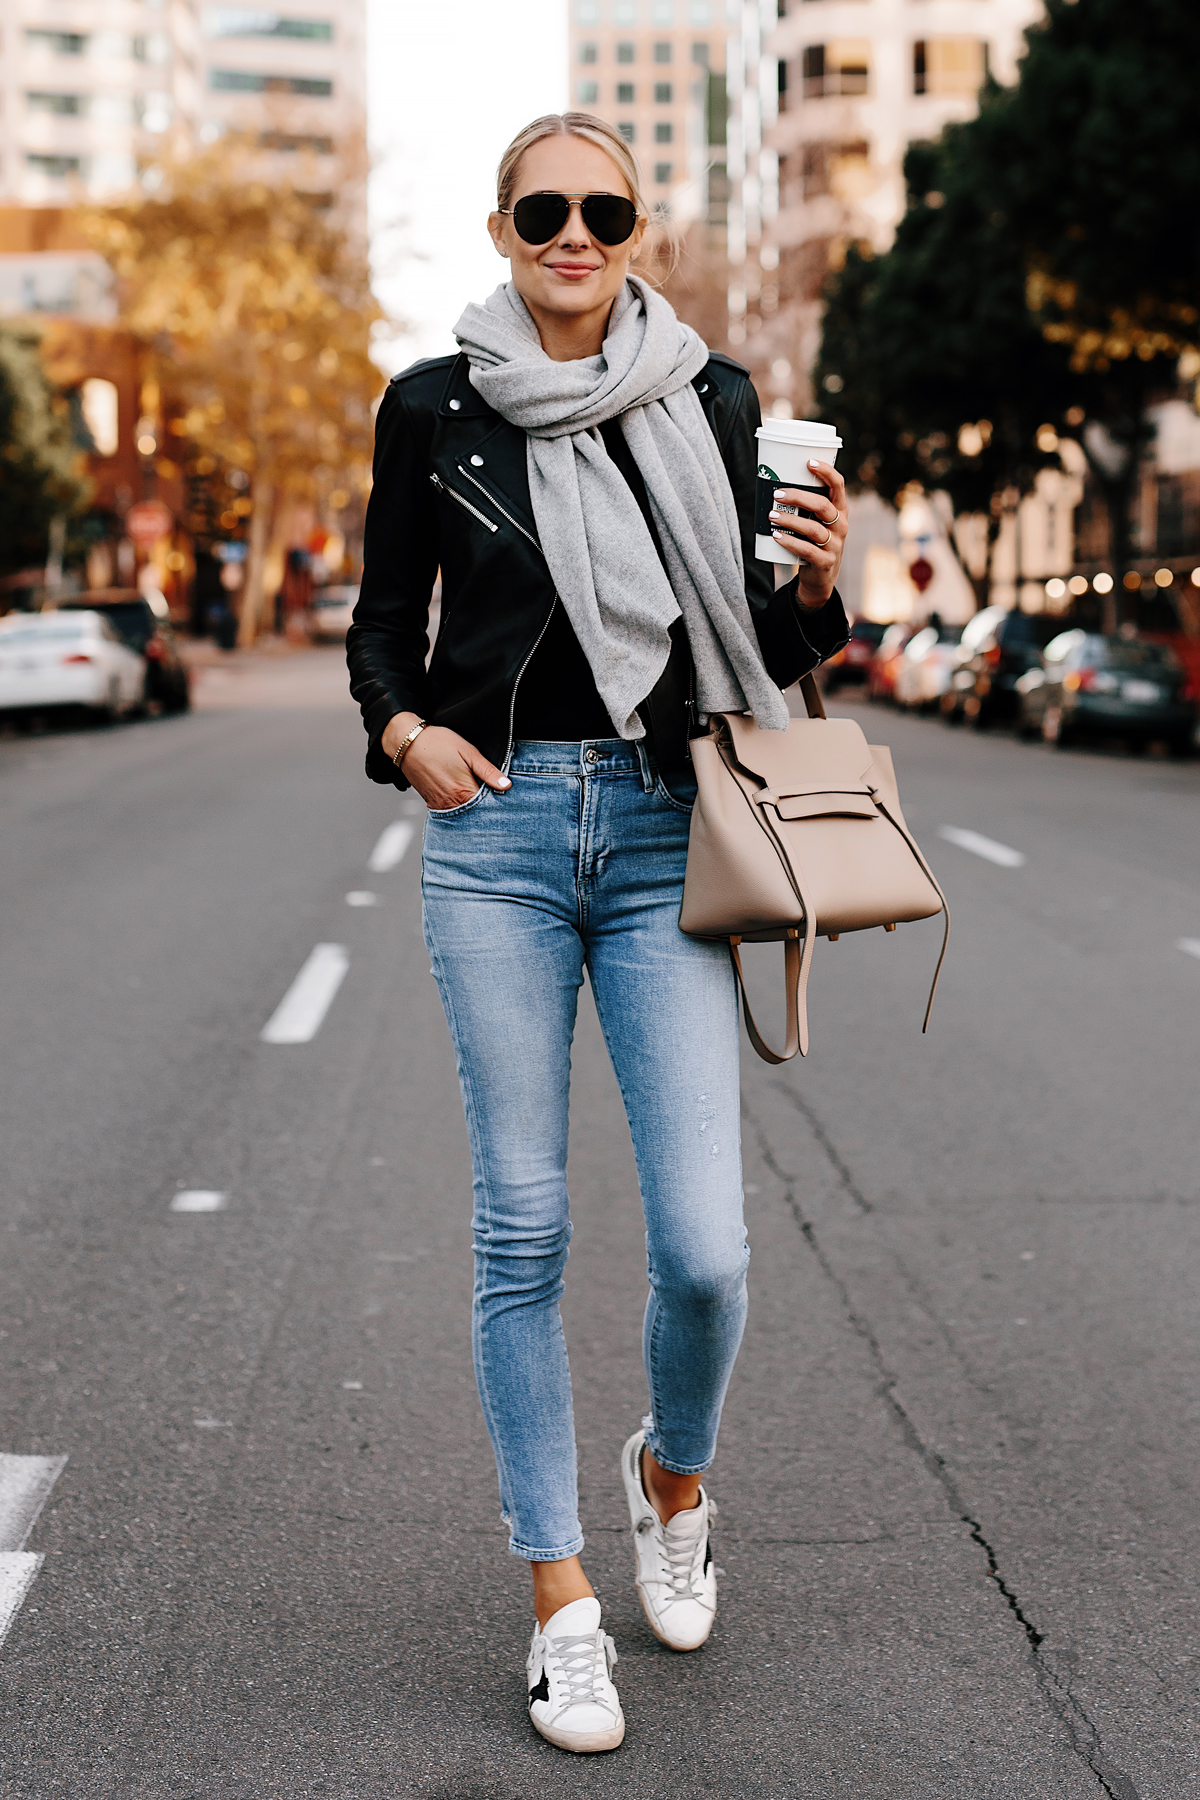 Blonde Woman Wearing Club Monaco Black Leather Jacket Grey Scarf Denim Skinny Jeans Golden Goose Sneakers Celine Mini Belt Bag Fashion Jackson San Diego Fashion Blogger Street Style